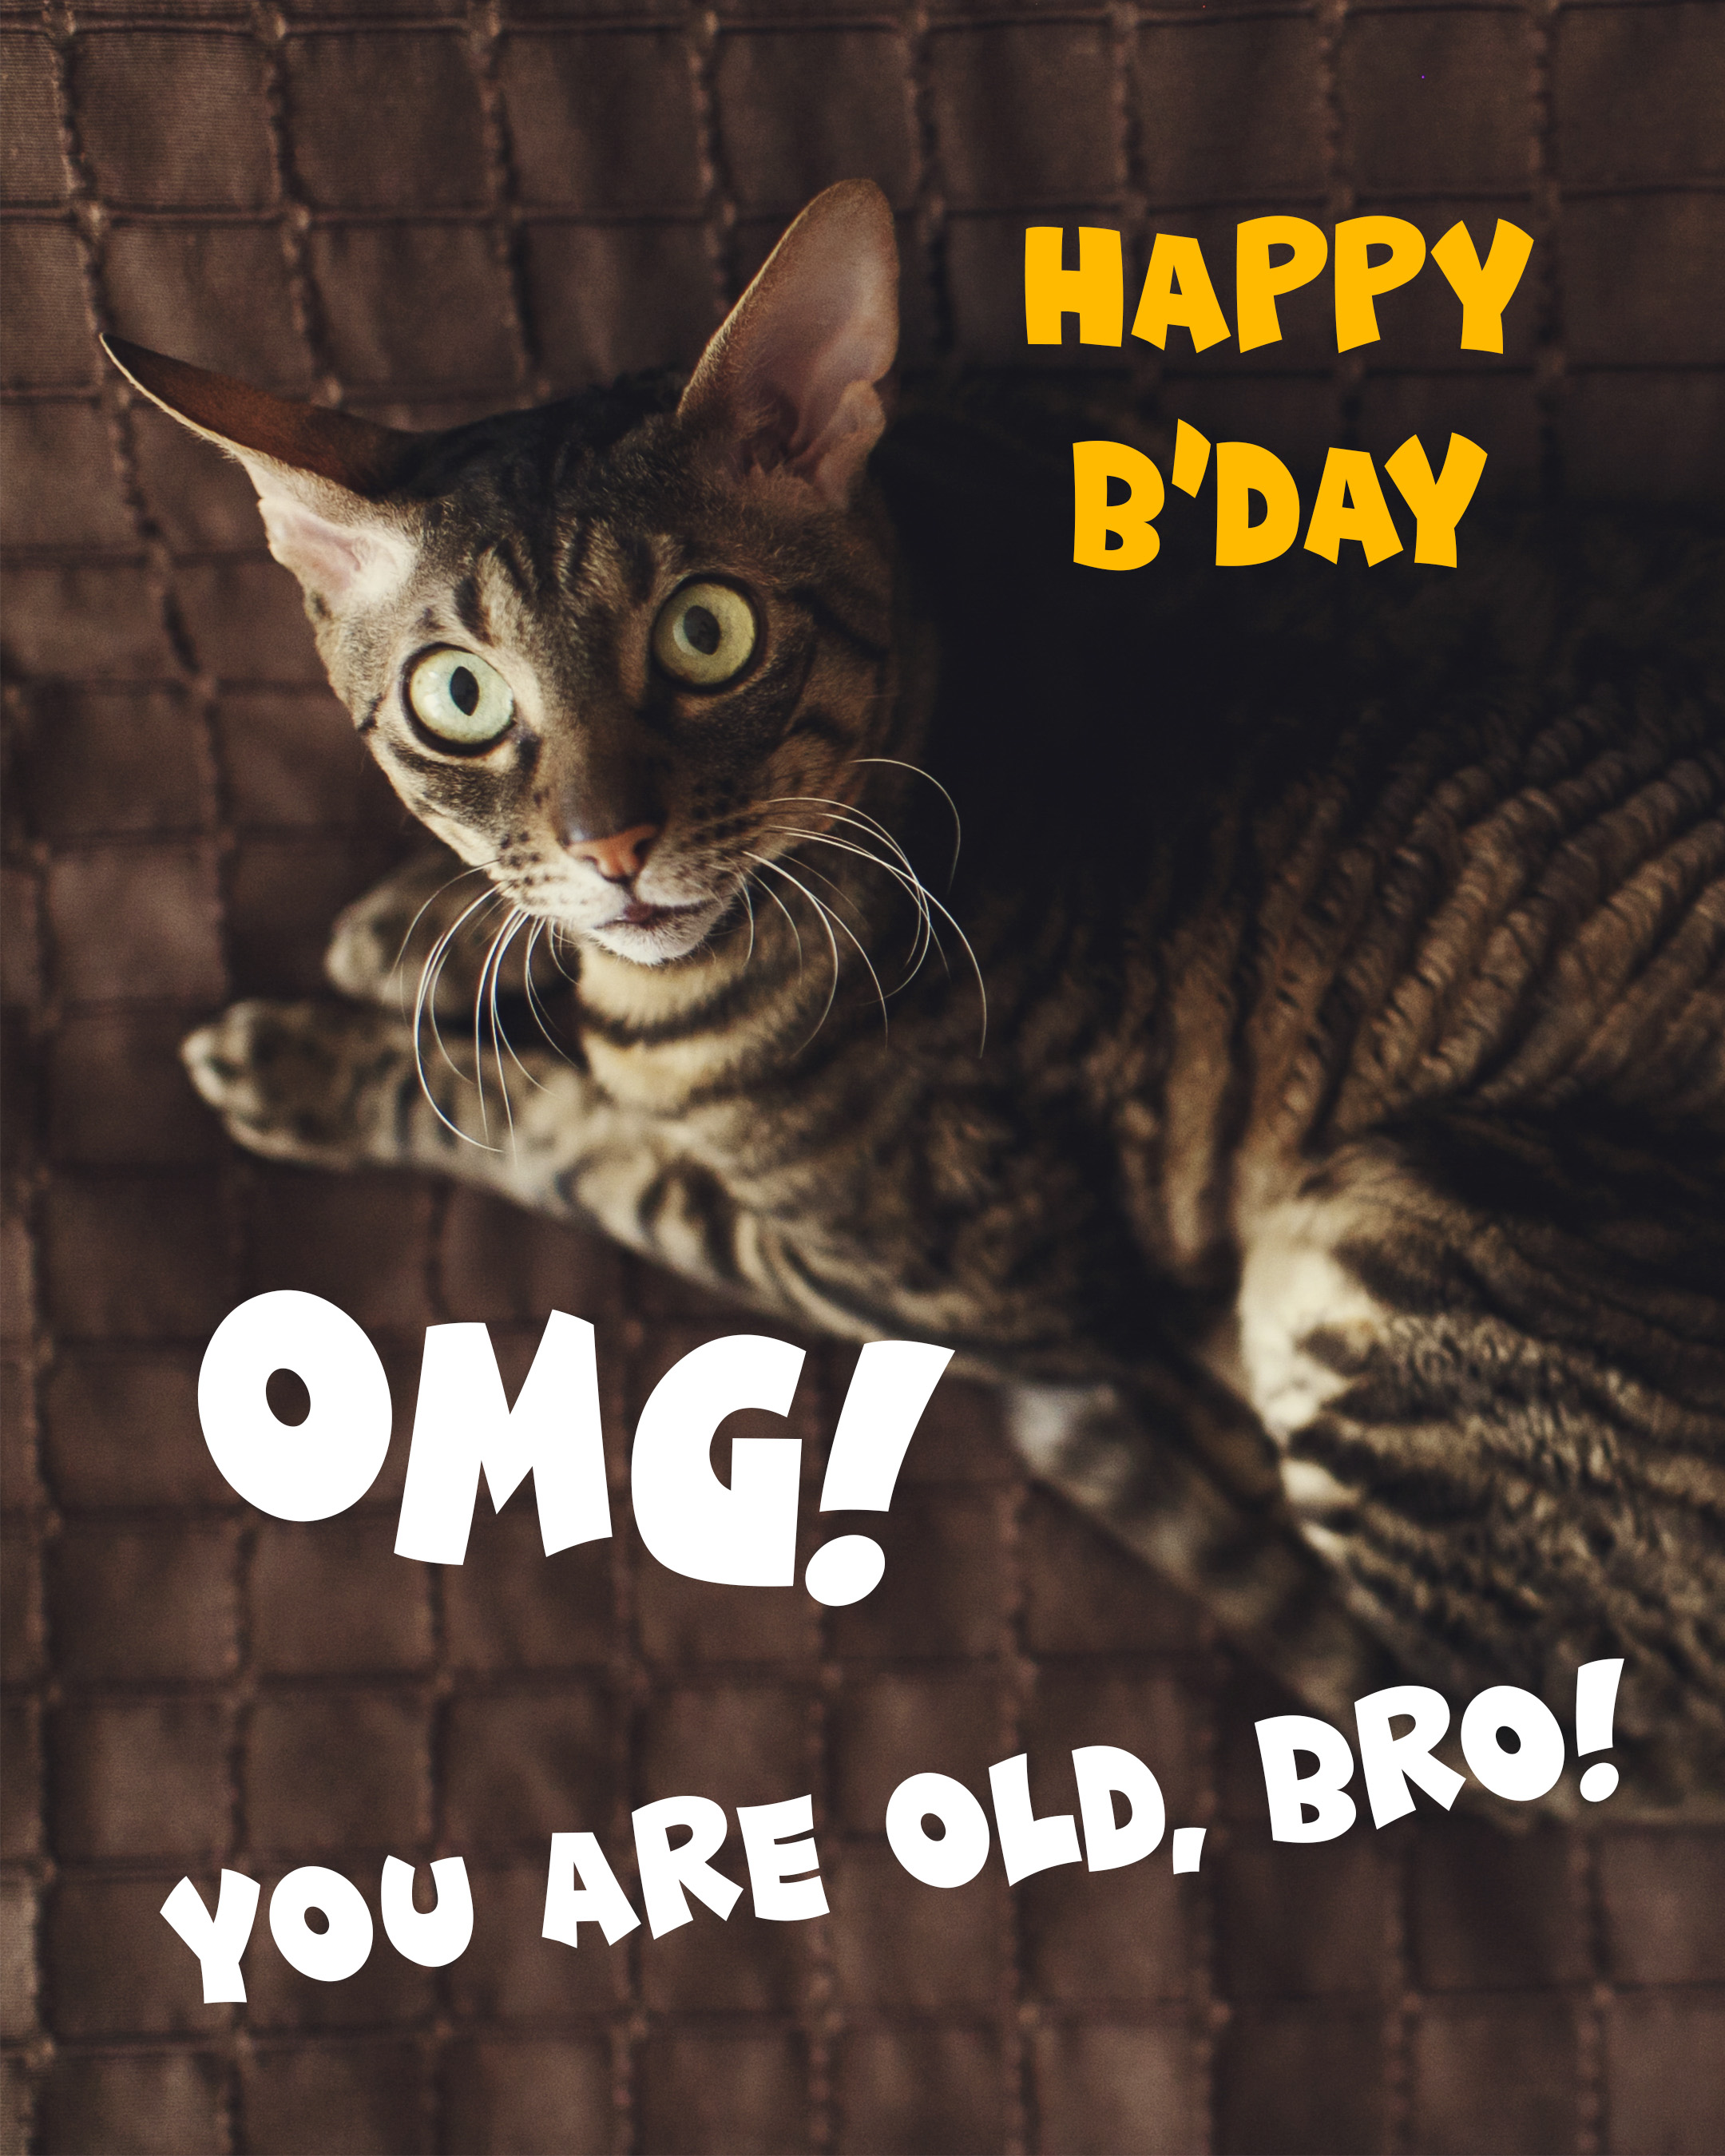 Free Funny Happy Birthday Image For Brother With Cat - birthdayimg.com